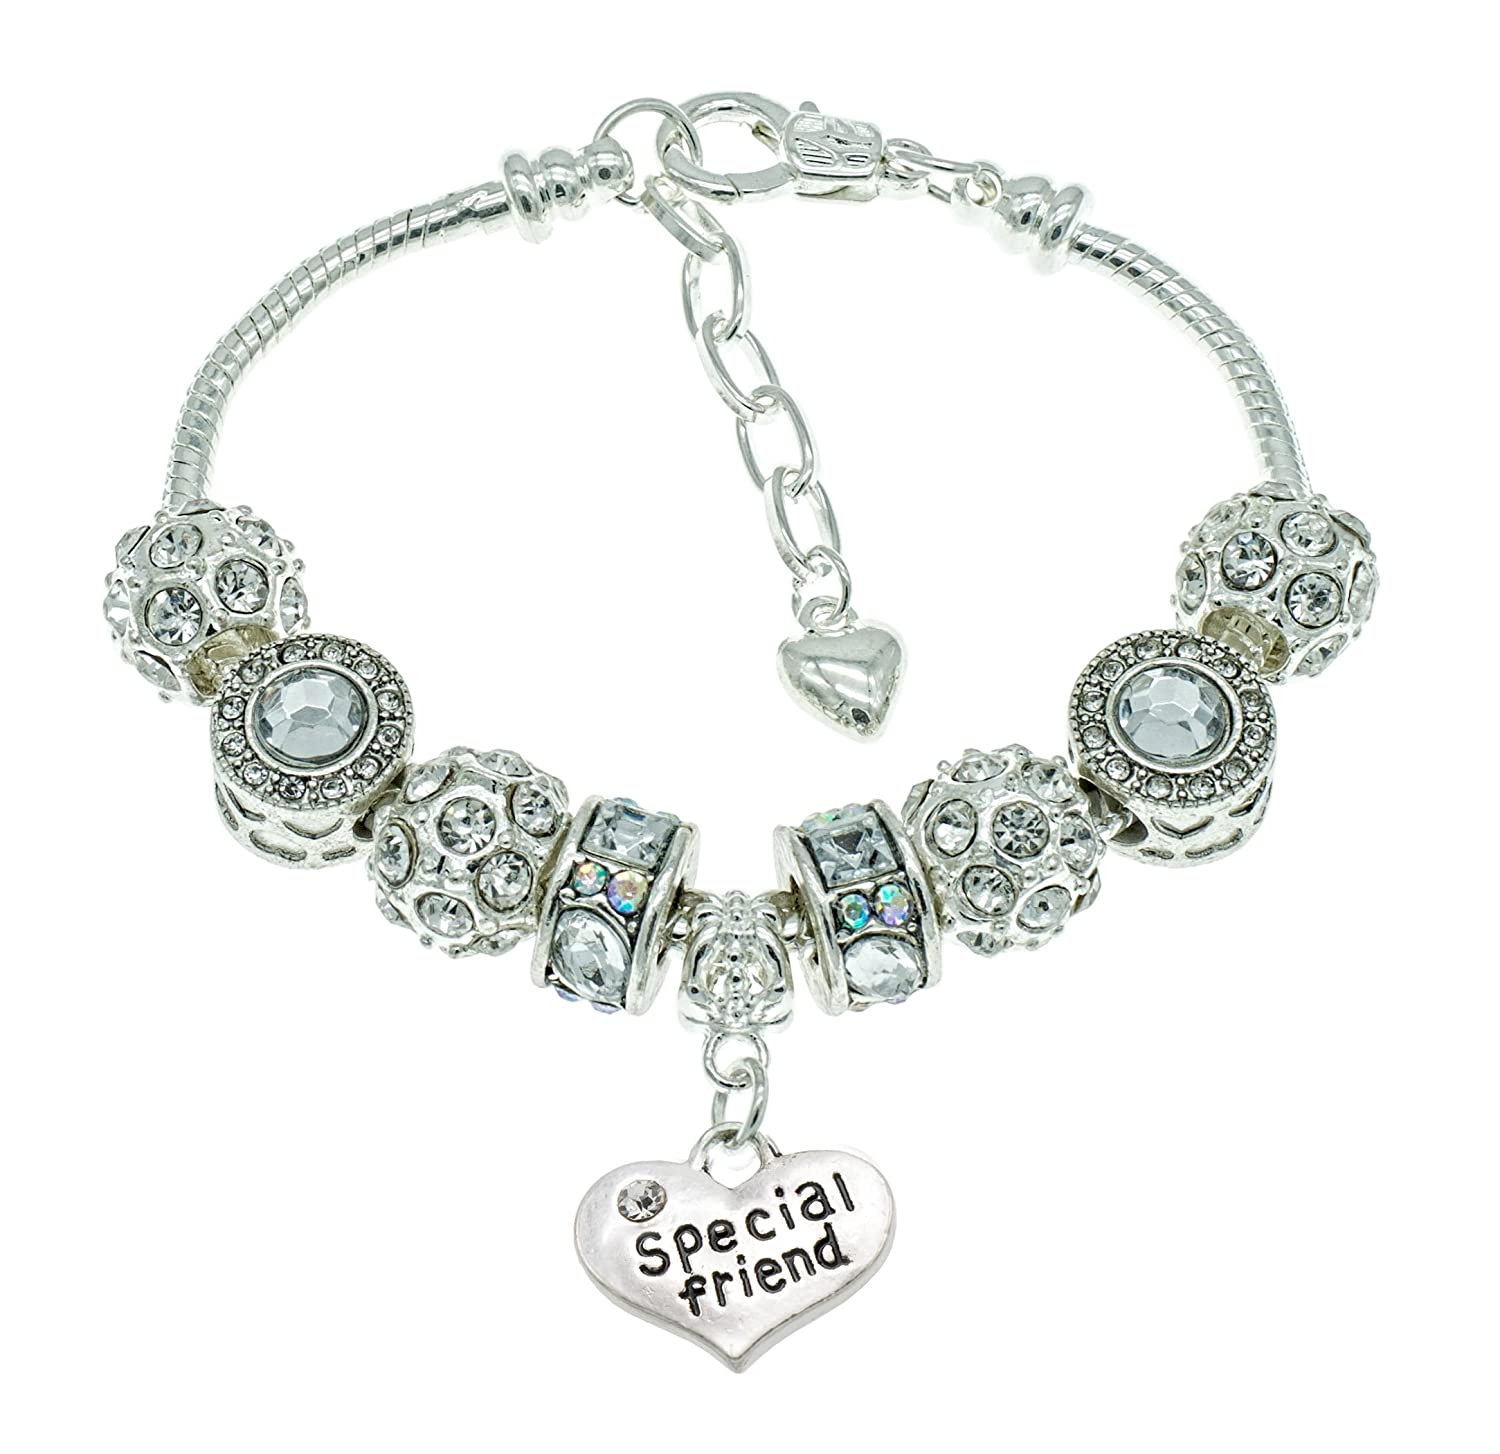 Jewellery Hut Just For You Womens Sparkly Birthday Bracelet With Gift Box And Card